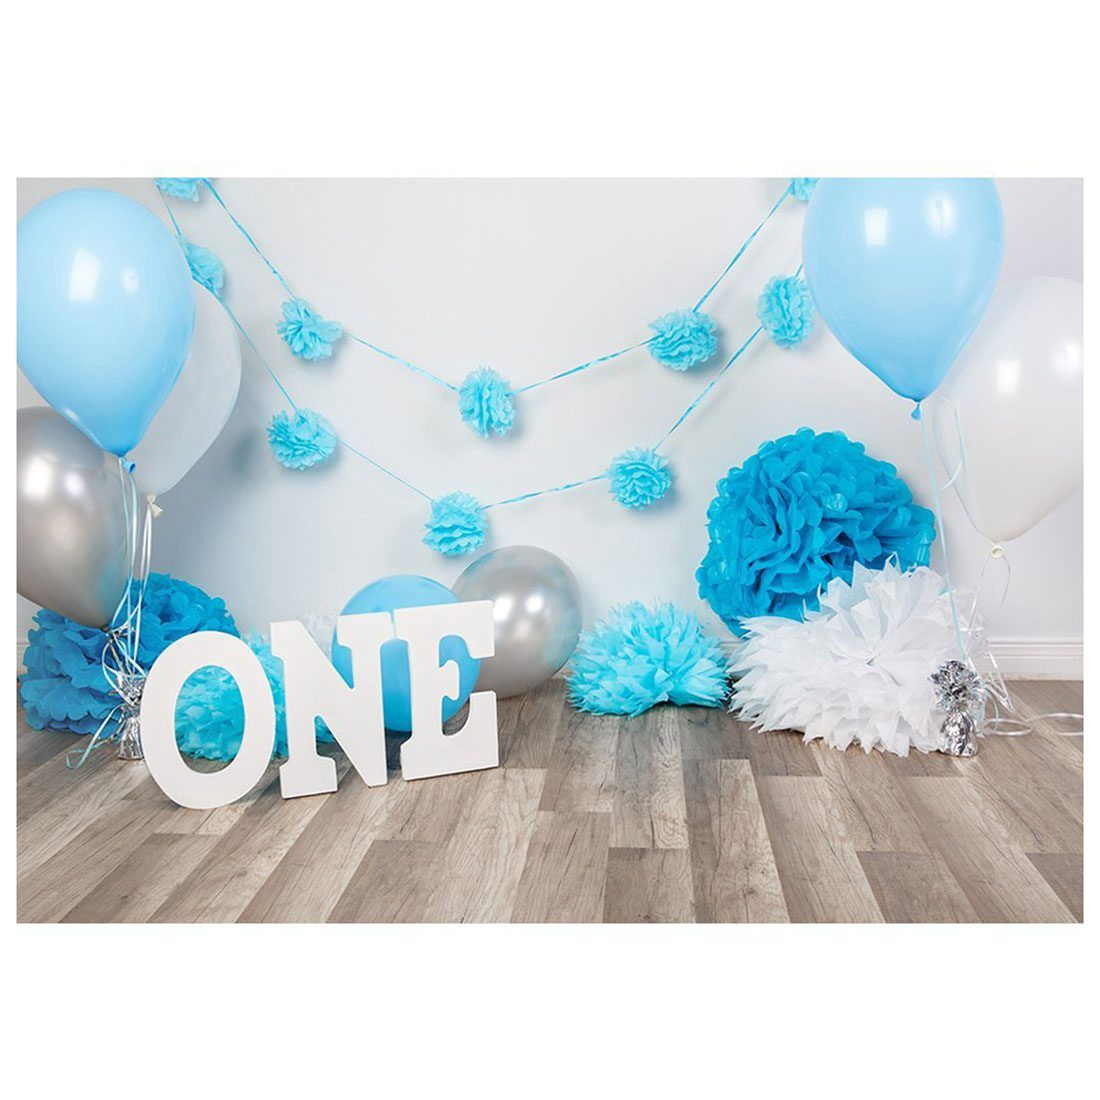 7x5ft Photography Backdrops baby boys 1st Birthday Blue balloons flowers party banner studio booth background photocall